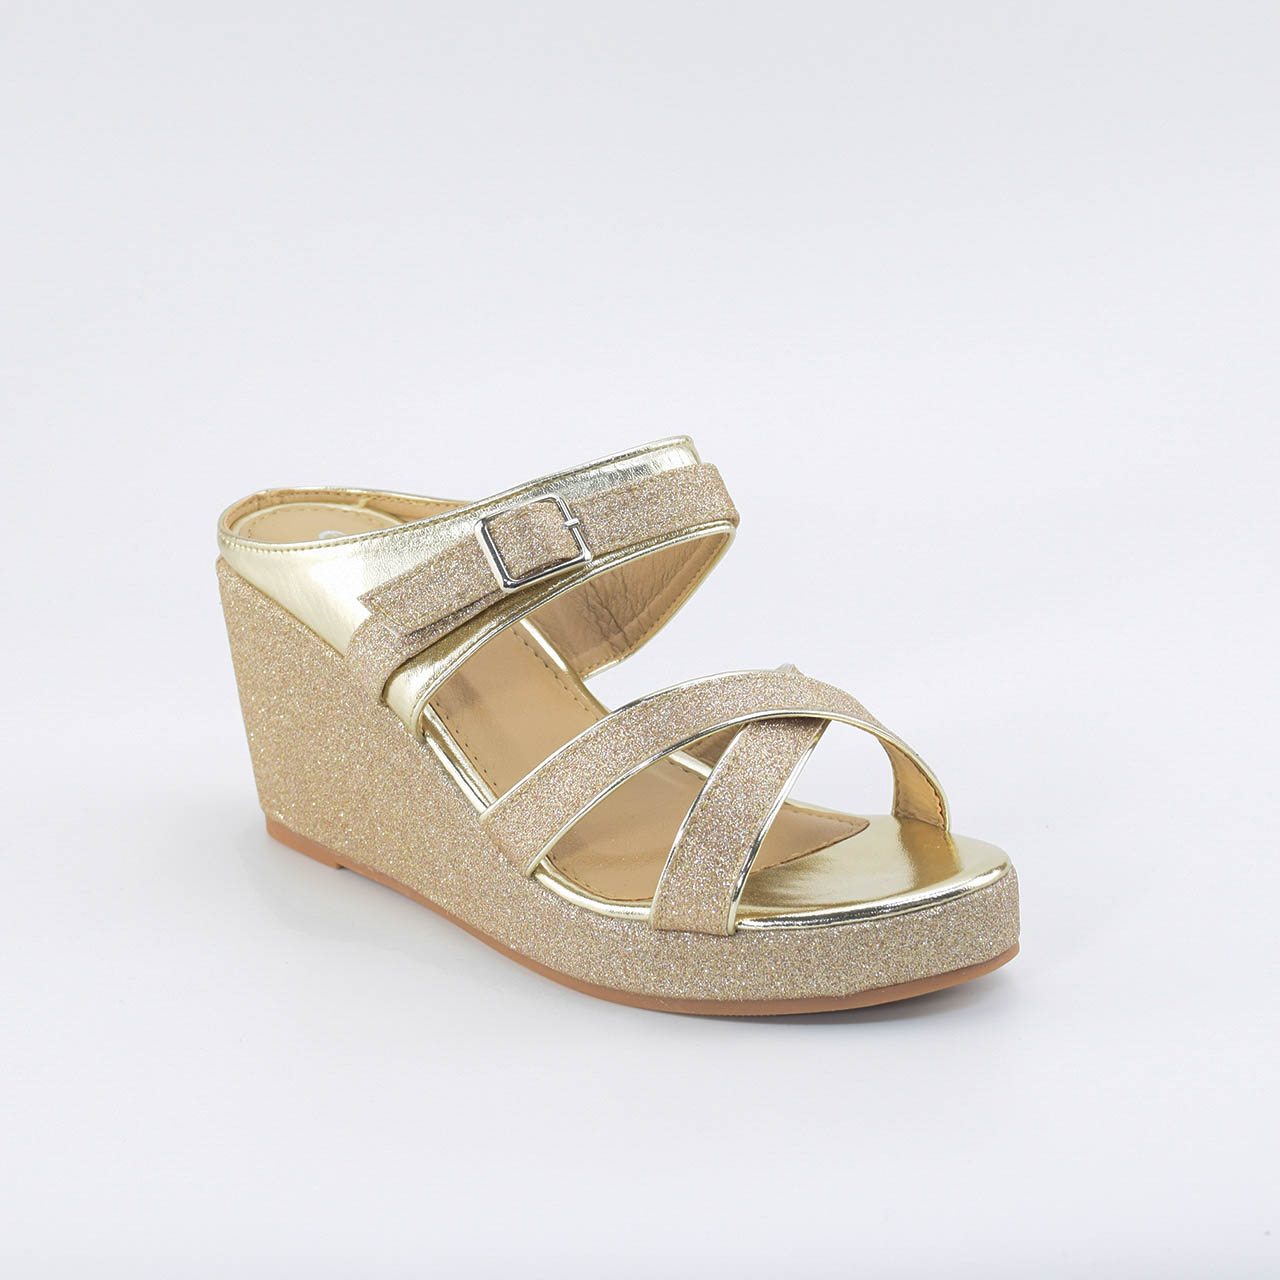 Maeve Cross Wedges in Gold